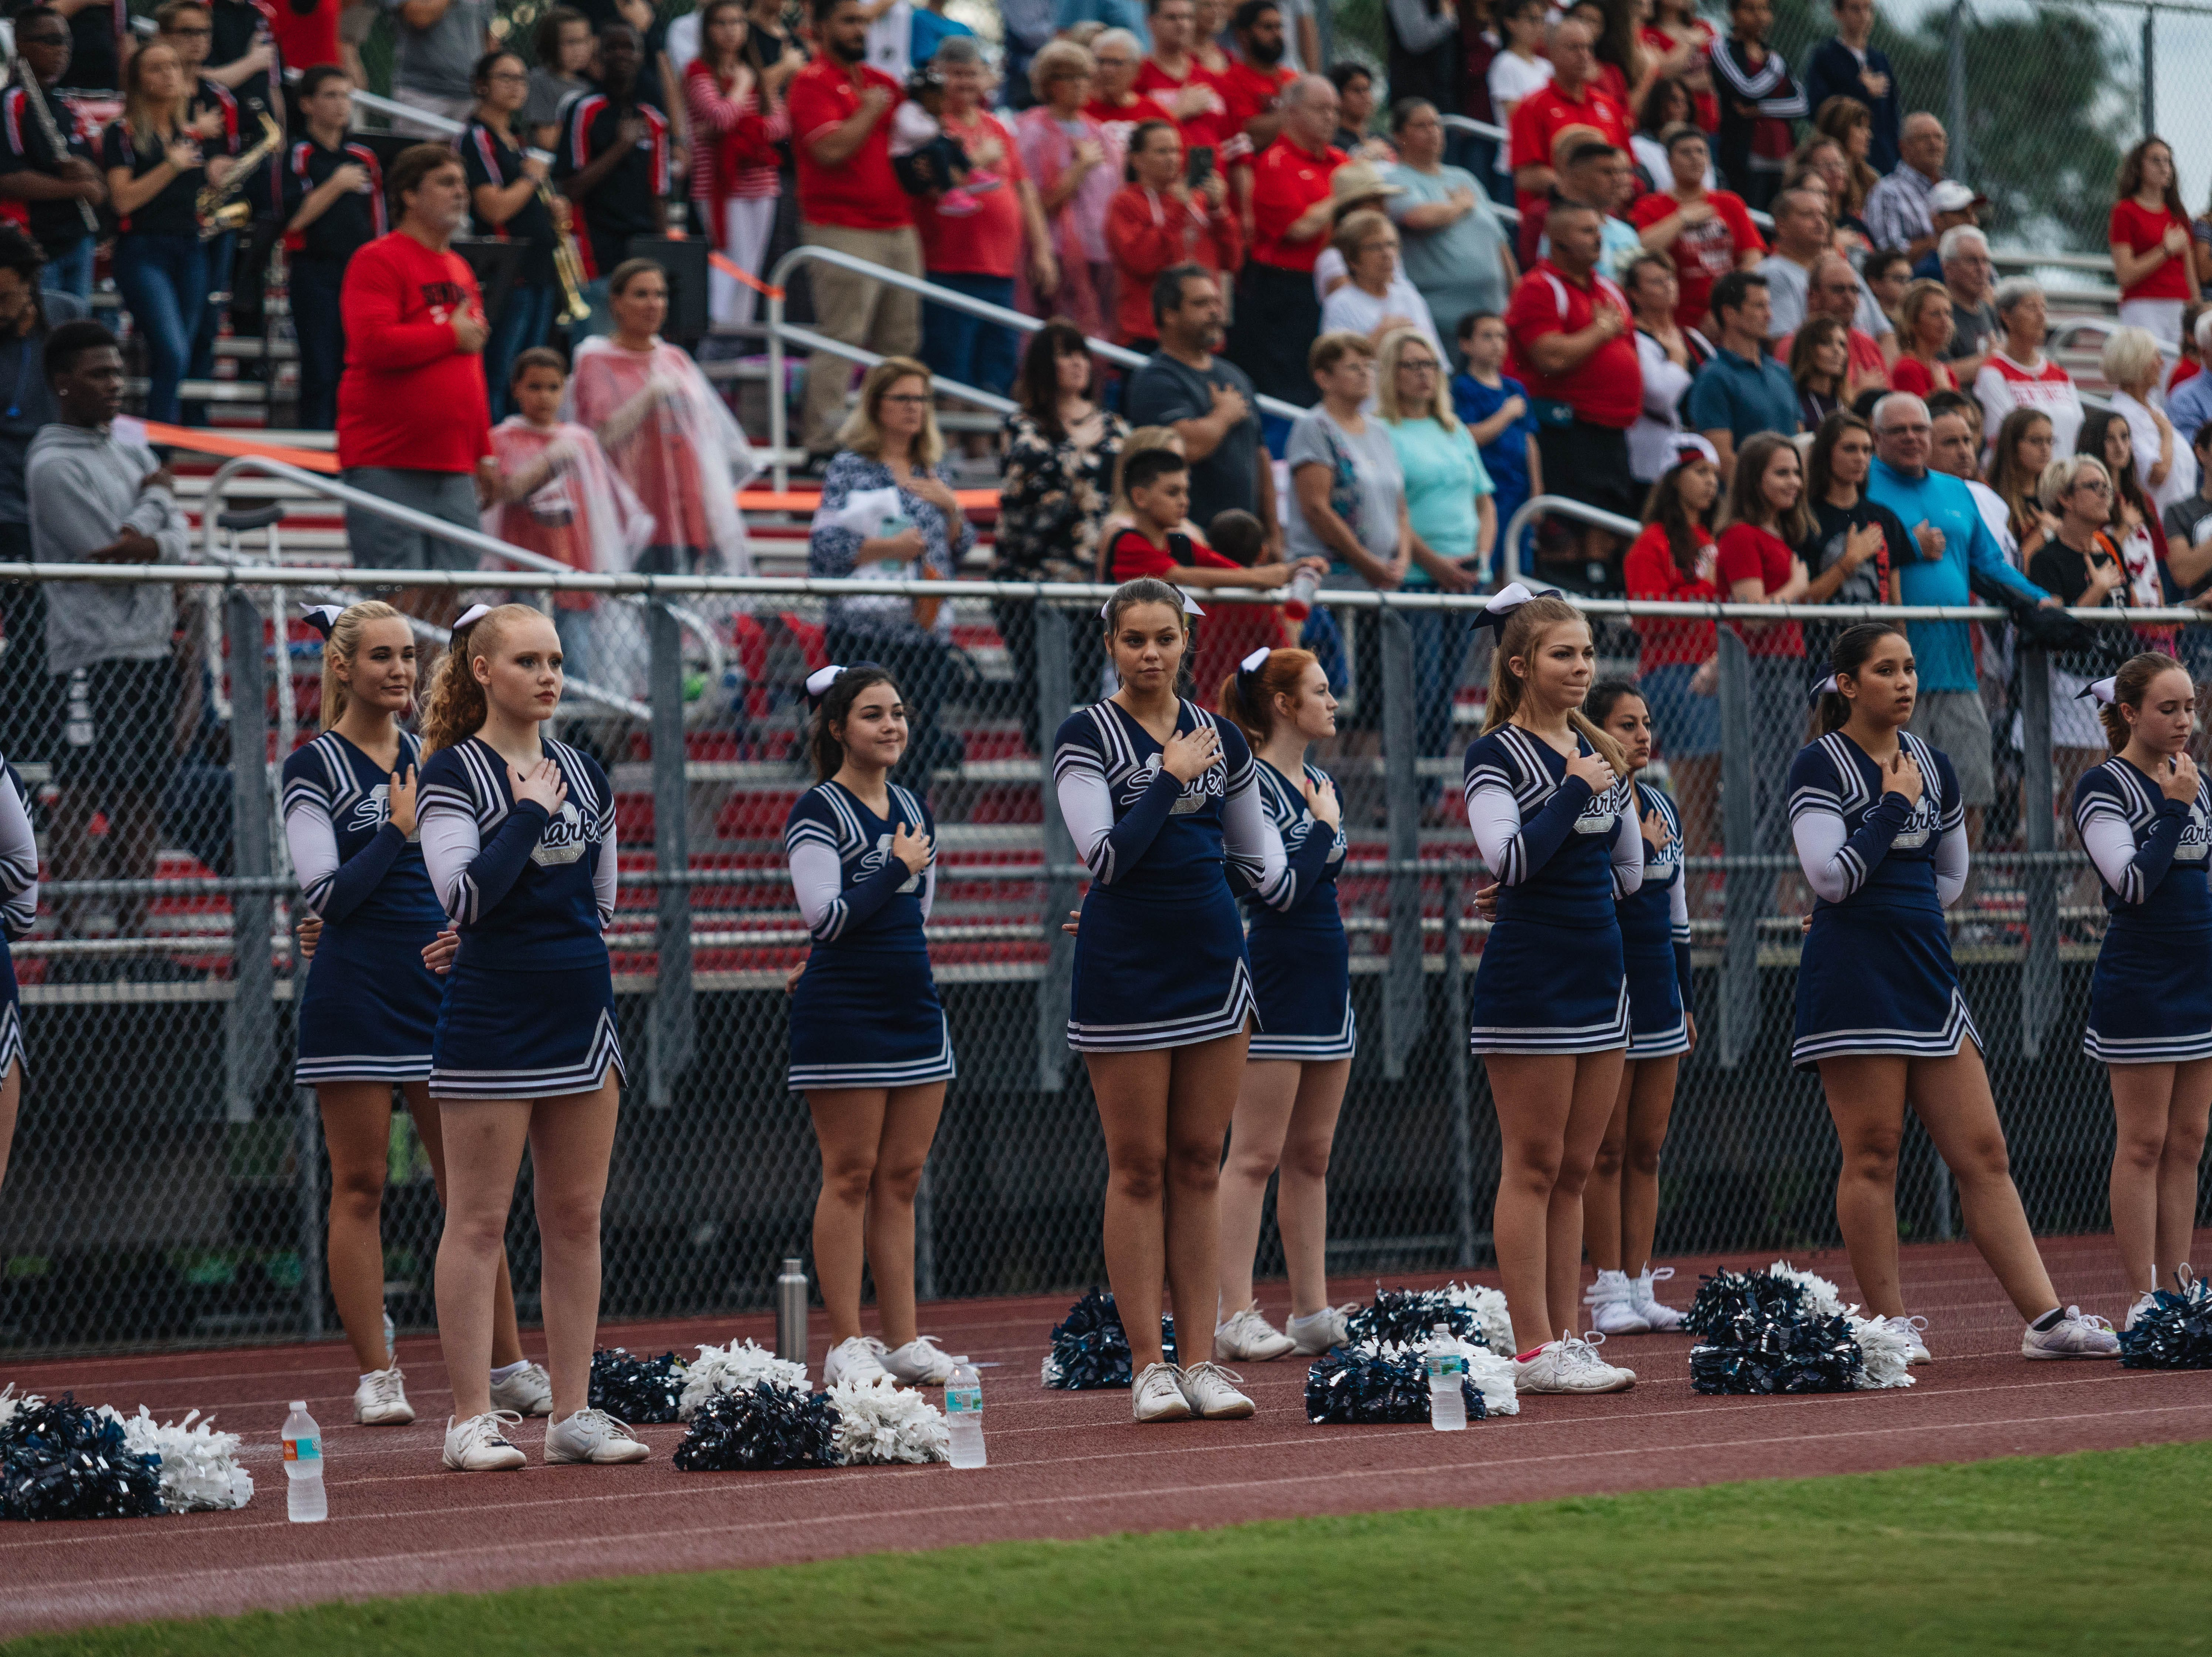 Evangelical Christian School took on Oasis in a high school football game on Sept. 7, 2018.